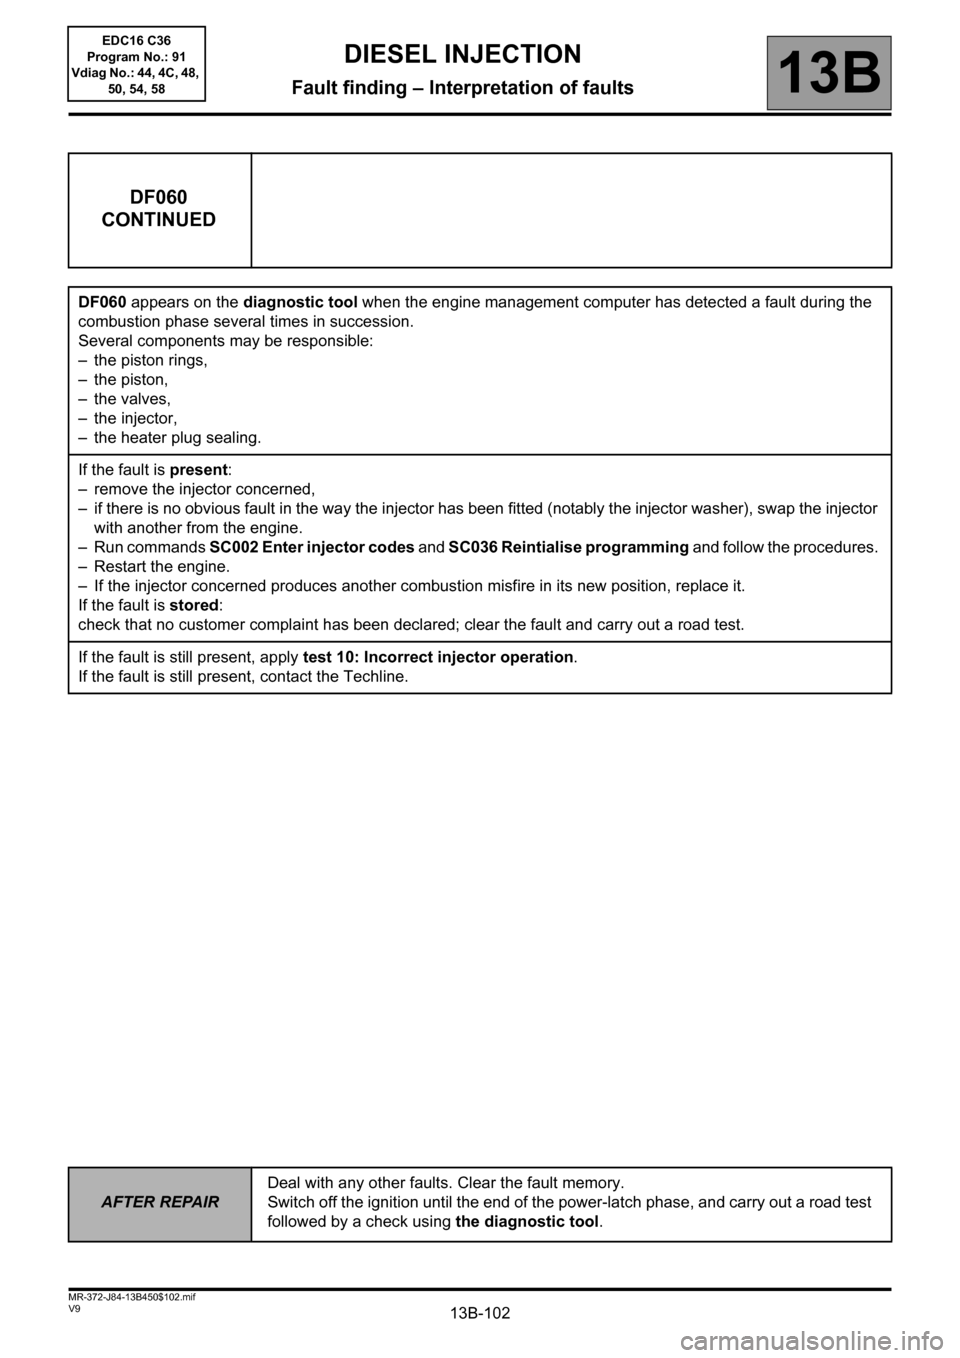 RENAULT SCENIC 2011 J95 / 3.G Engine And Peripherals EDC16C36 Workshop Manual, Page 102